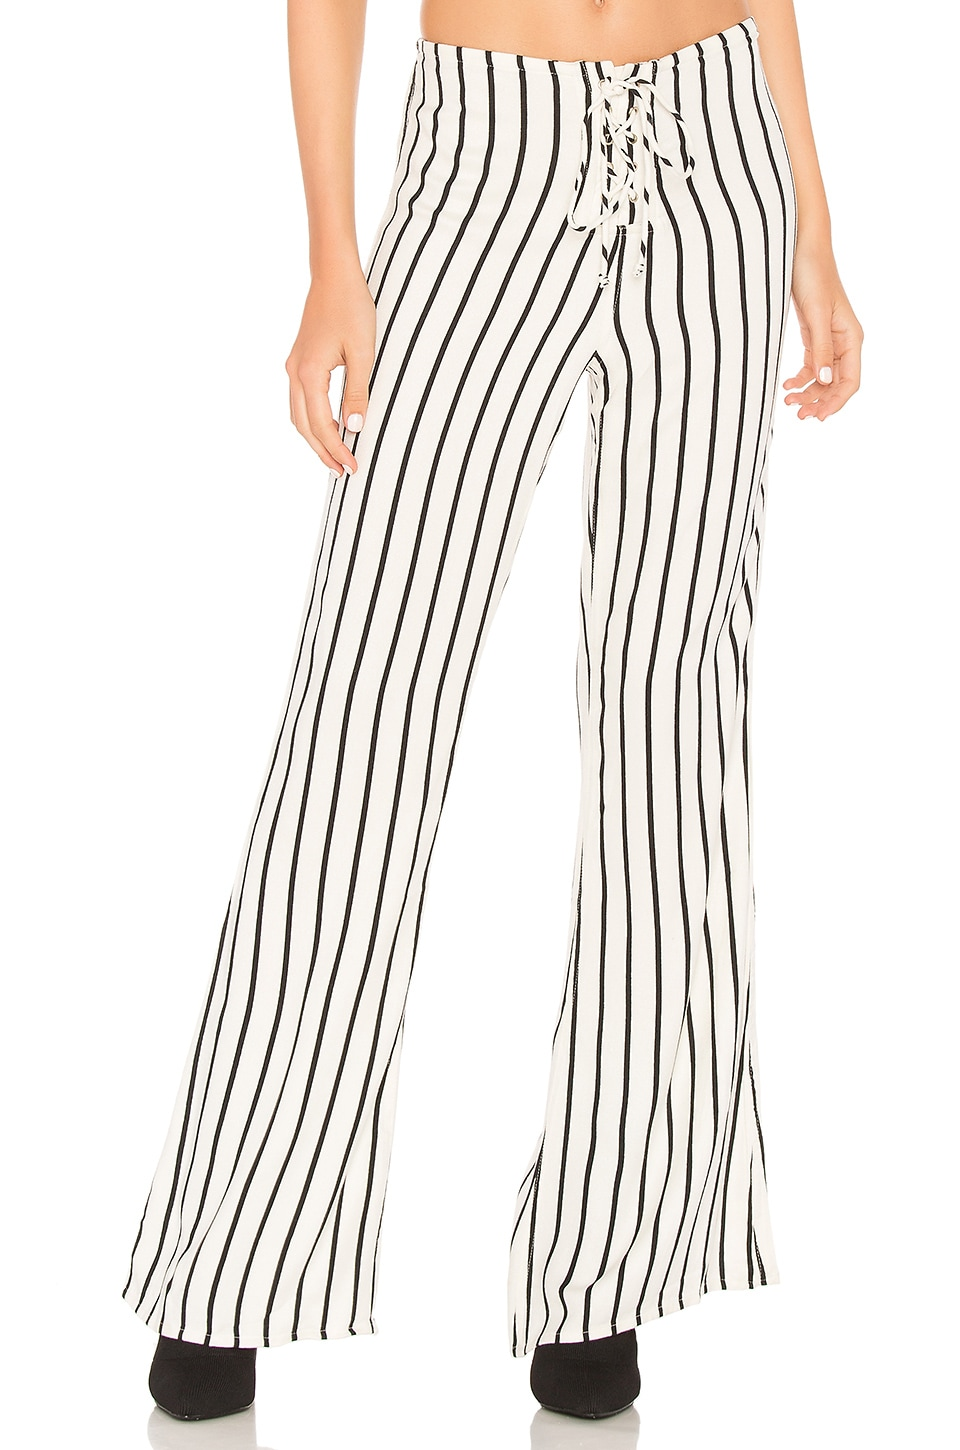 Strummer Lace Up Pant